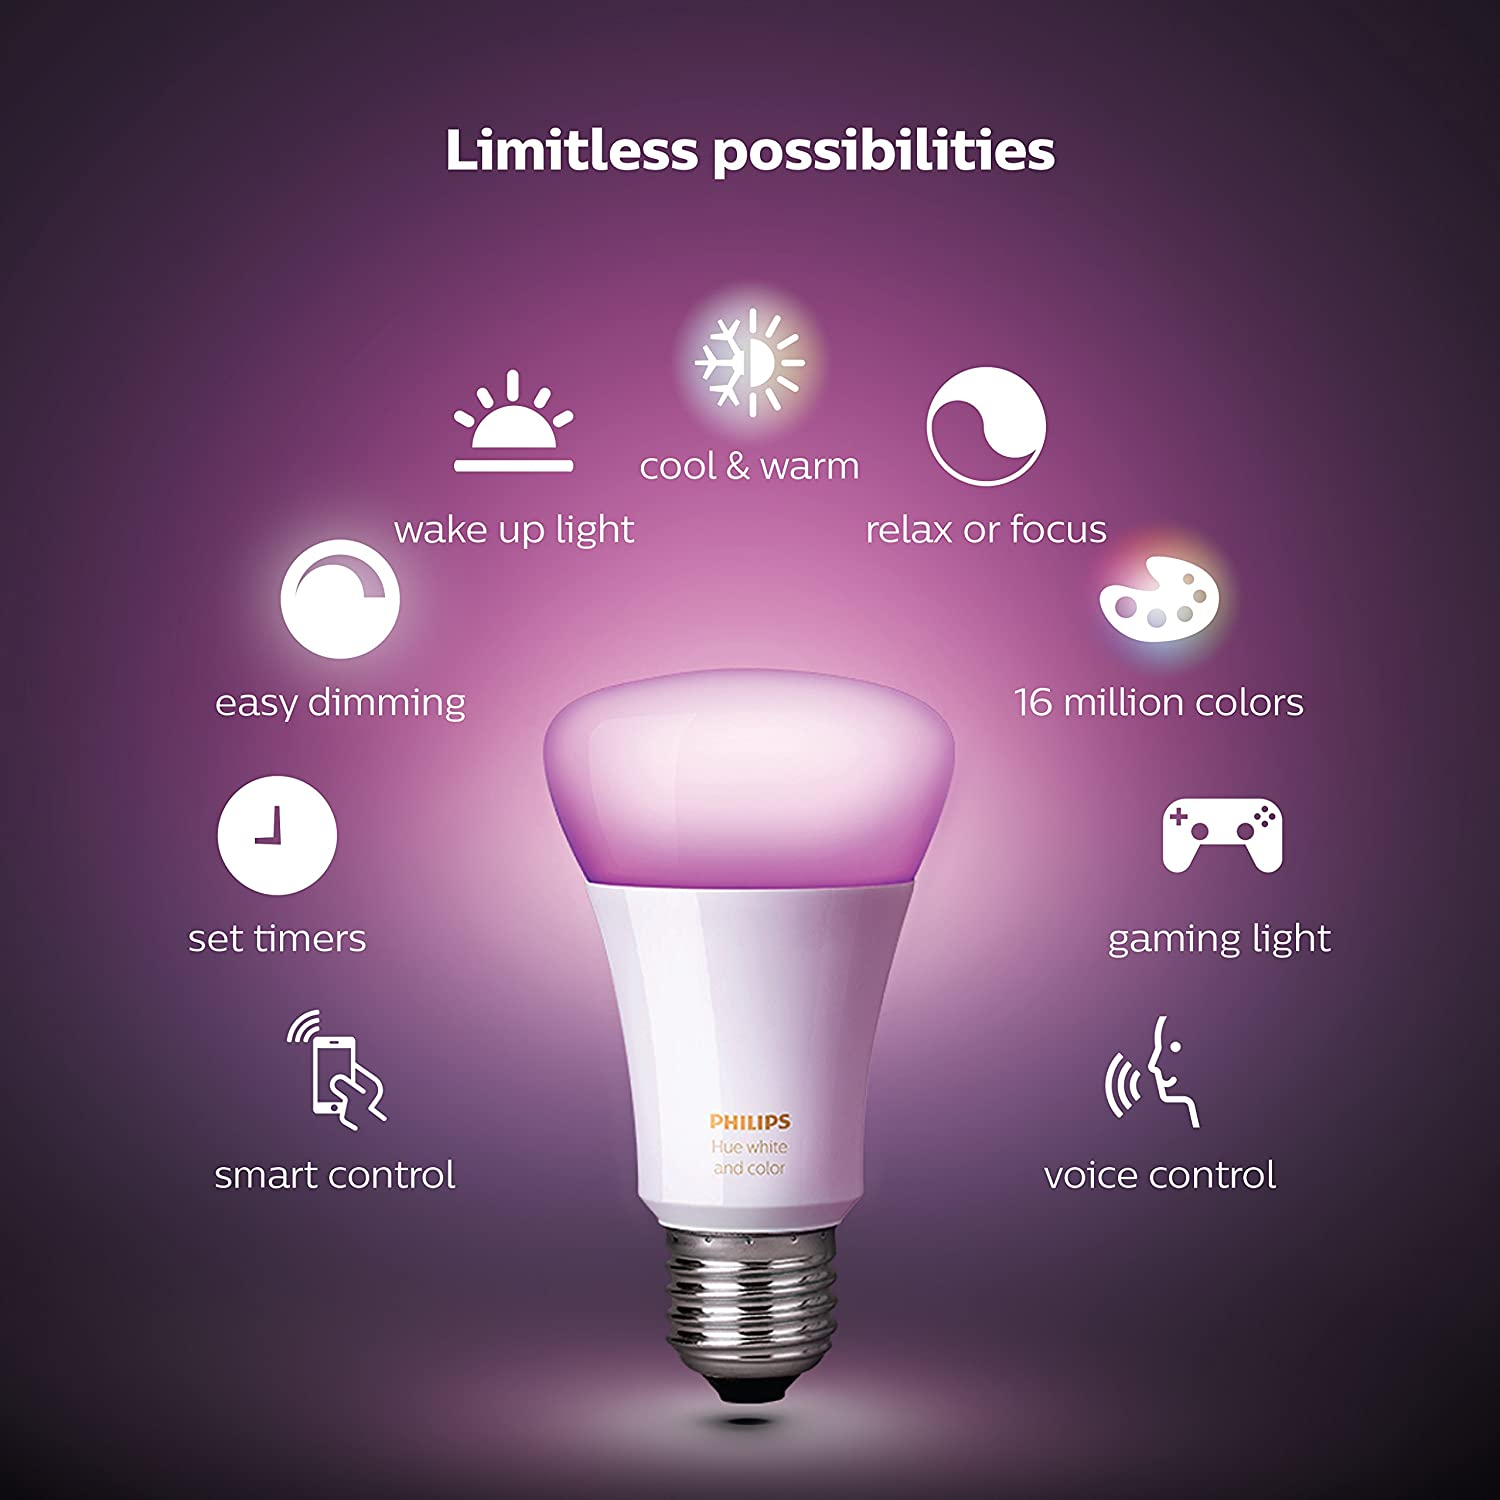 Philips Hue Lamp.Philips Hue White And Color Ambiance A19 60w Equivalent Led Smart Bulb Starter Kit 4 A19 Bulbs And 1 Hub Compatible With Amazon Alexa Apple Homekit